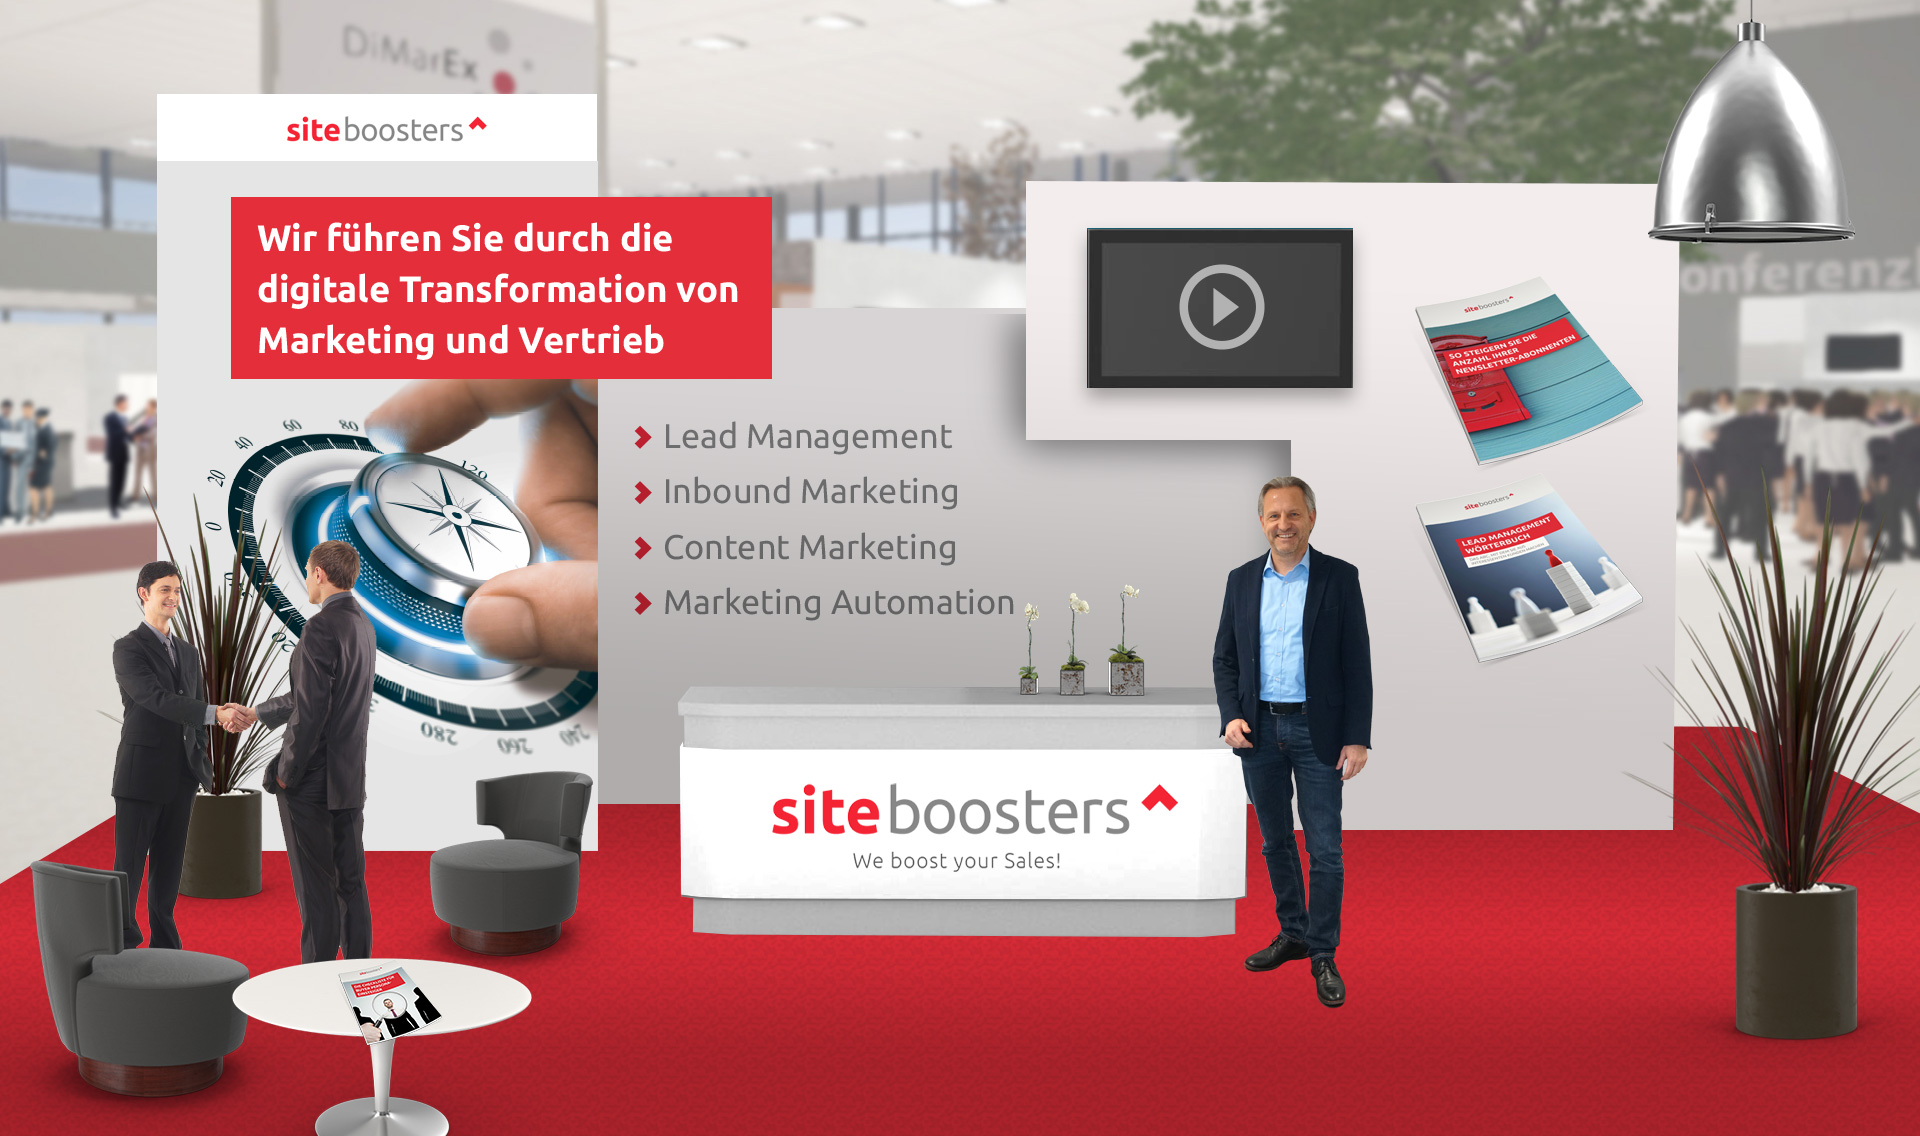 stand_siteboosters